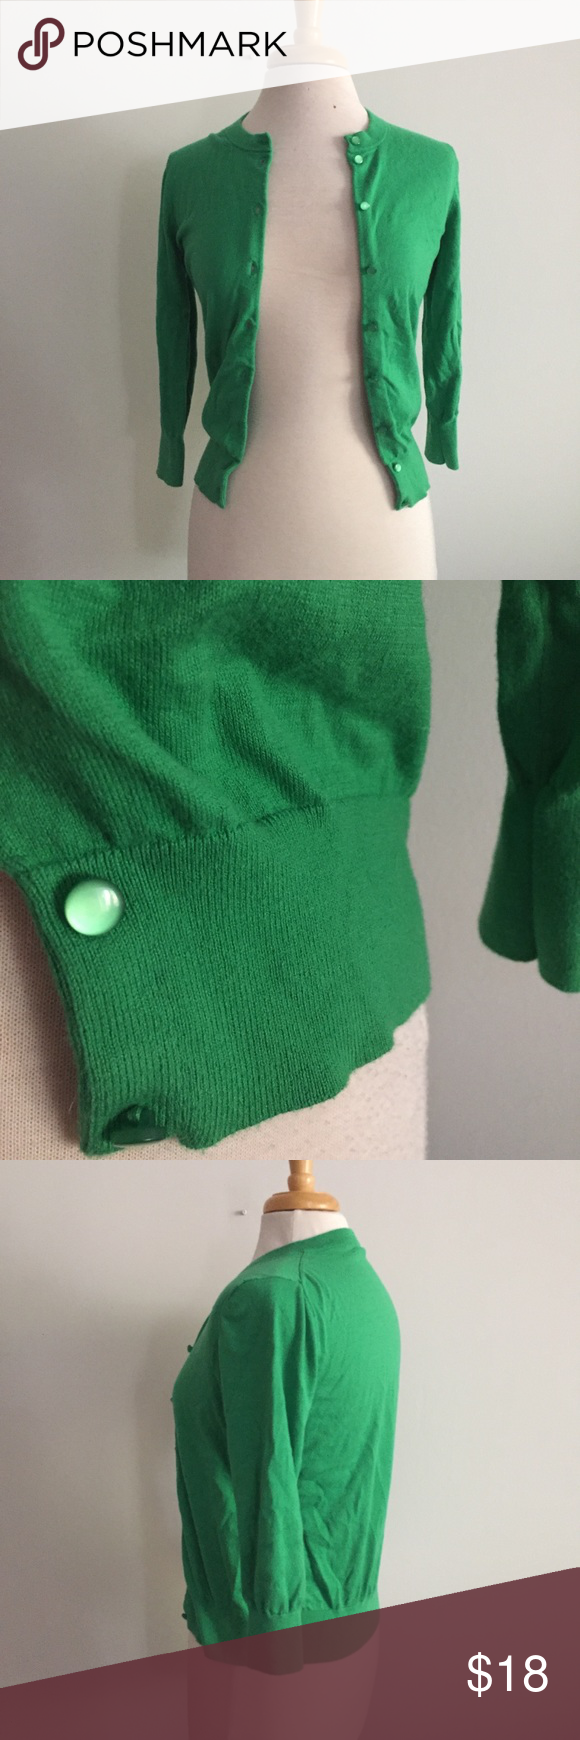 18e05fe104 J Crew Kelly Green Cardigan Sweater Size Small This is a gorgeous kelly  green sweater from J Crew. It has long sleeves with ribbing on the ends of  sleeves ...